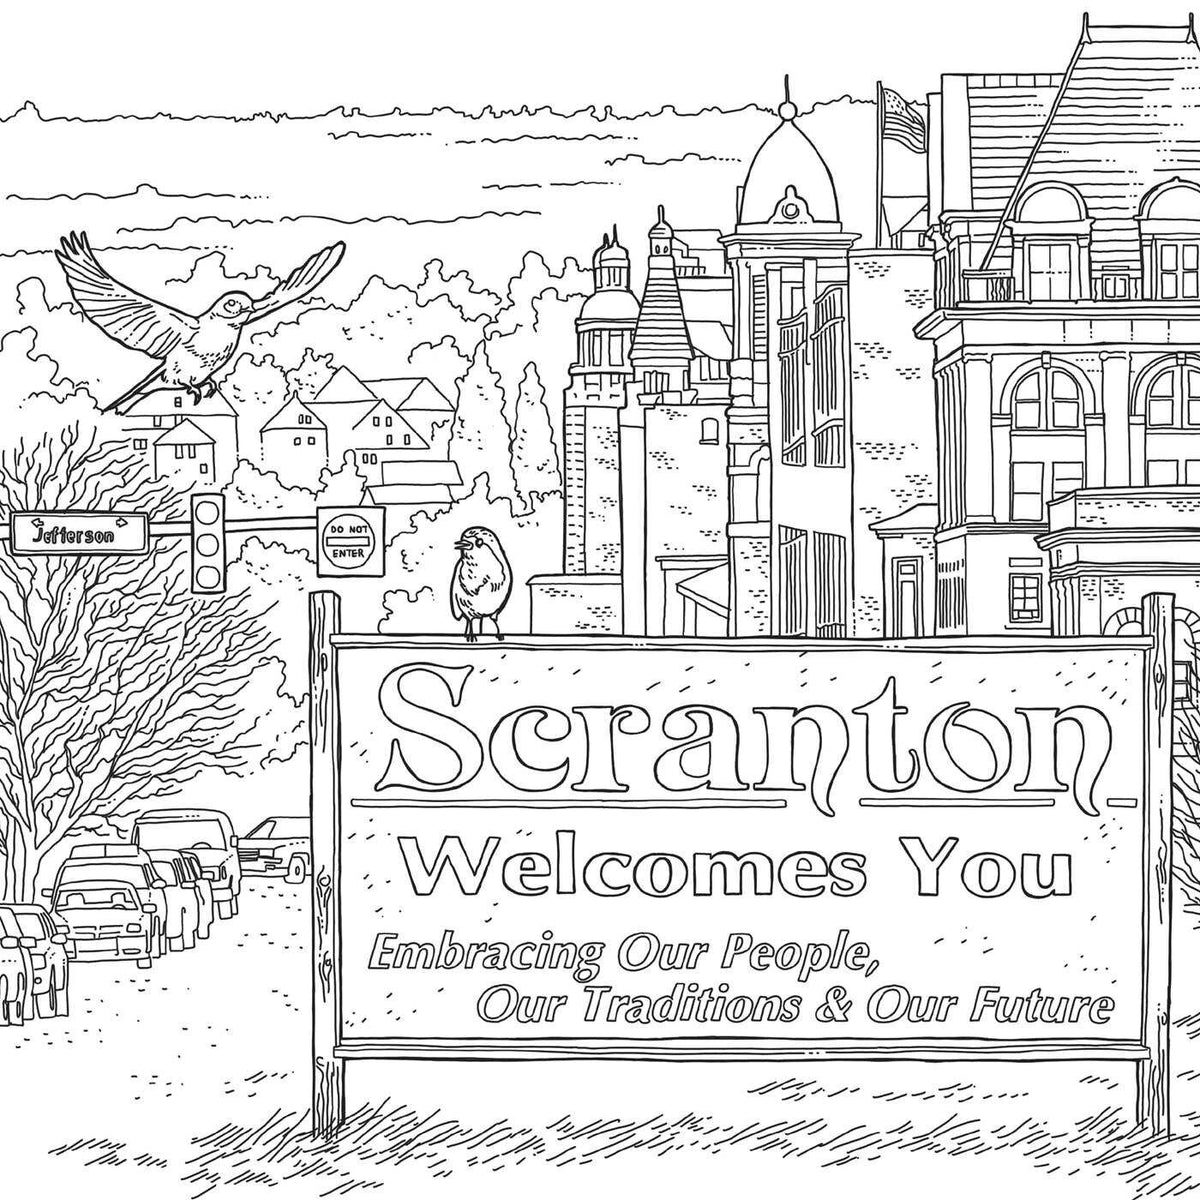 Welcome to Scranton - An Unofficial Coloring Book for Fans of The Office